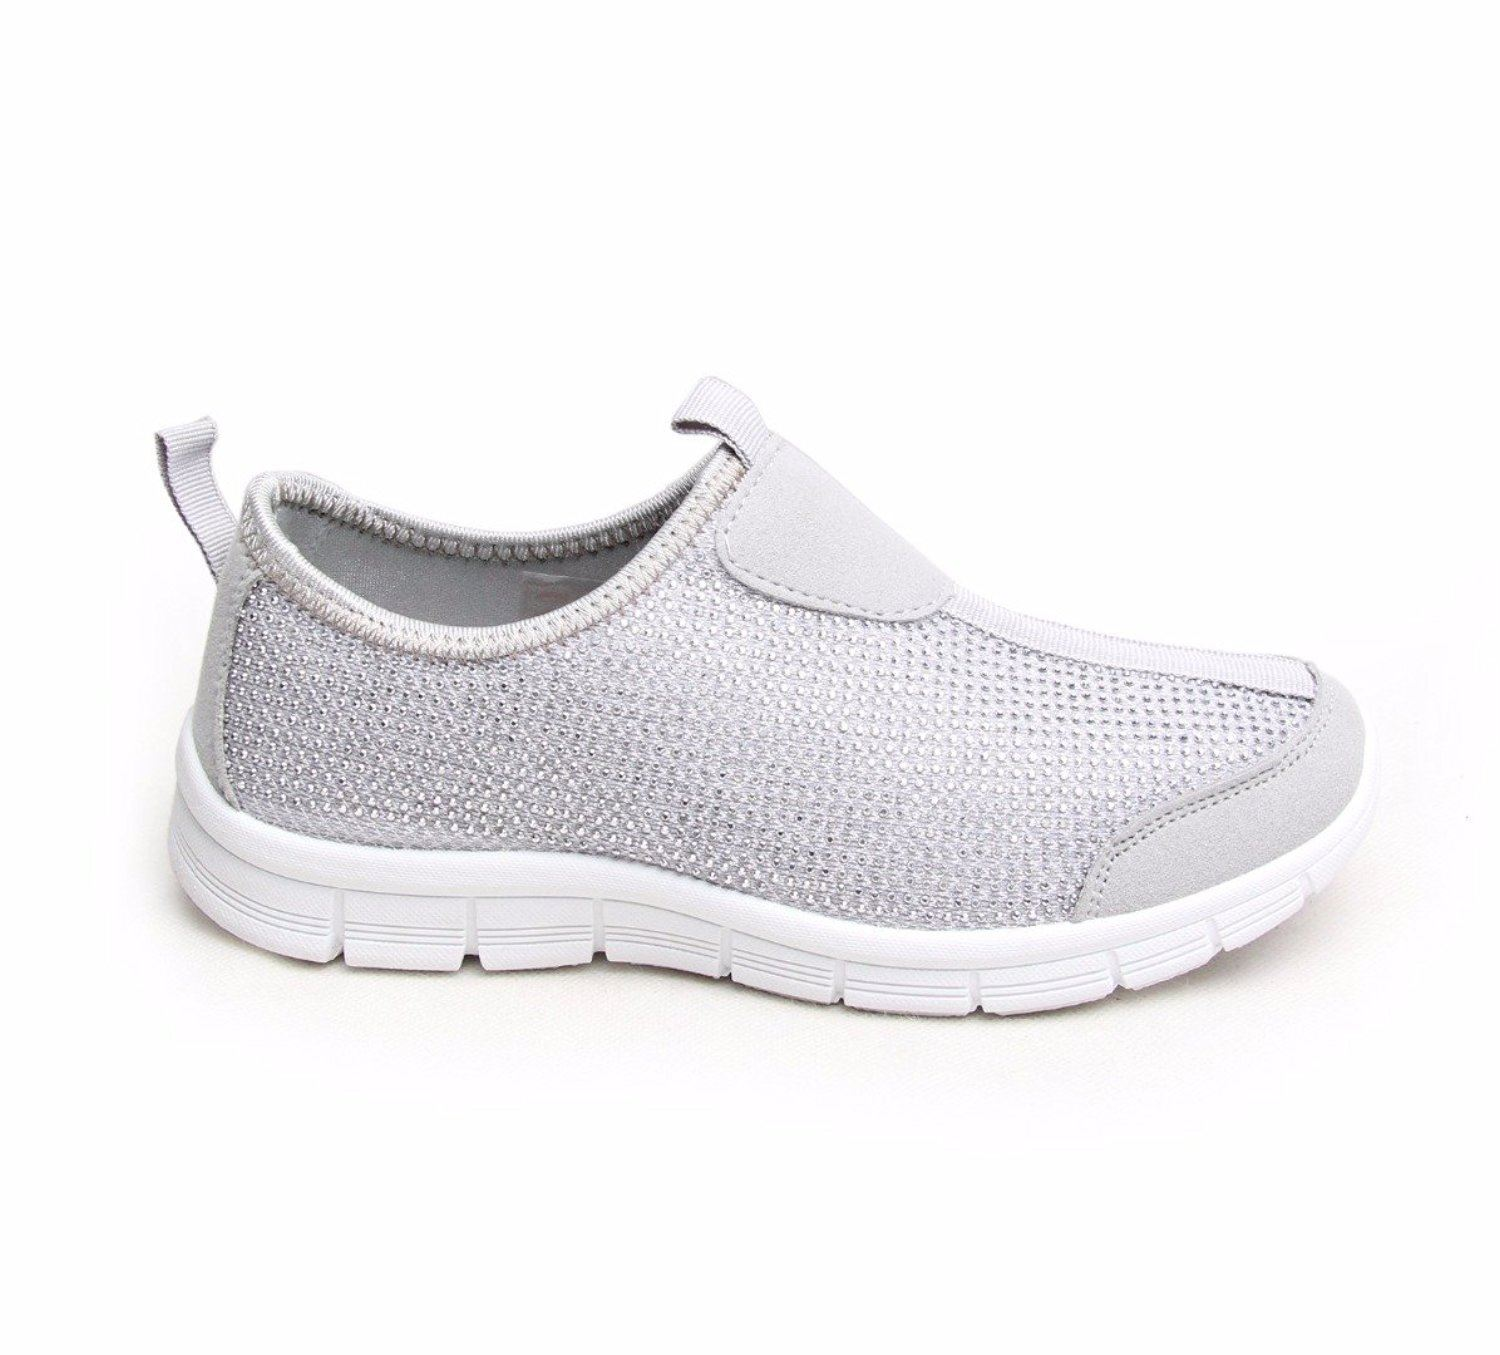 View all ladies footwear Our range of ladies trainers are perfect for jogging, sprinting or simply walking. Have a look at our collection of the latest womens trainers from big brands such as Nike, adidas, Lacoste, Skechers, Under Armour, New Balance, Reebok, Asics and many more.